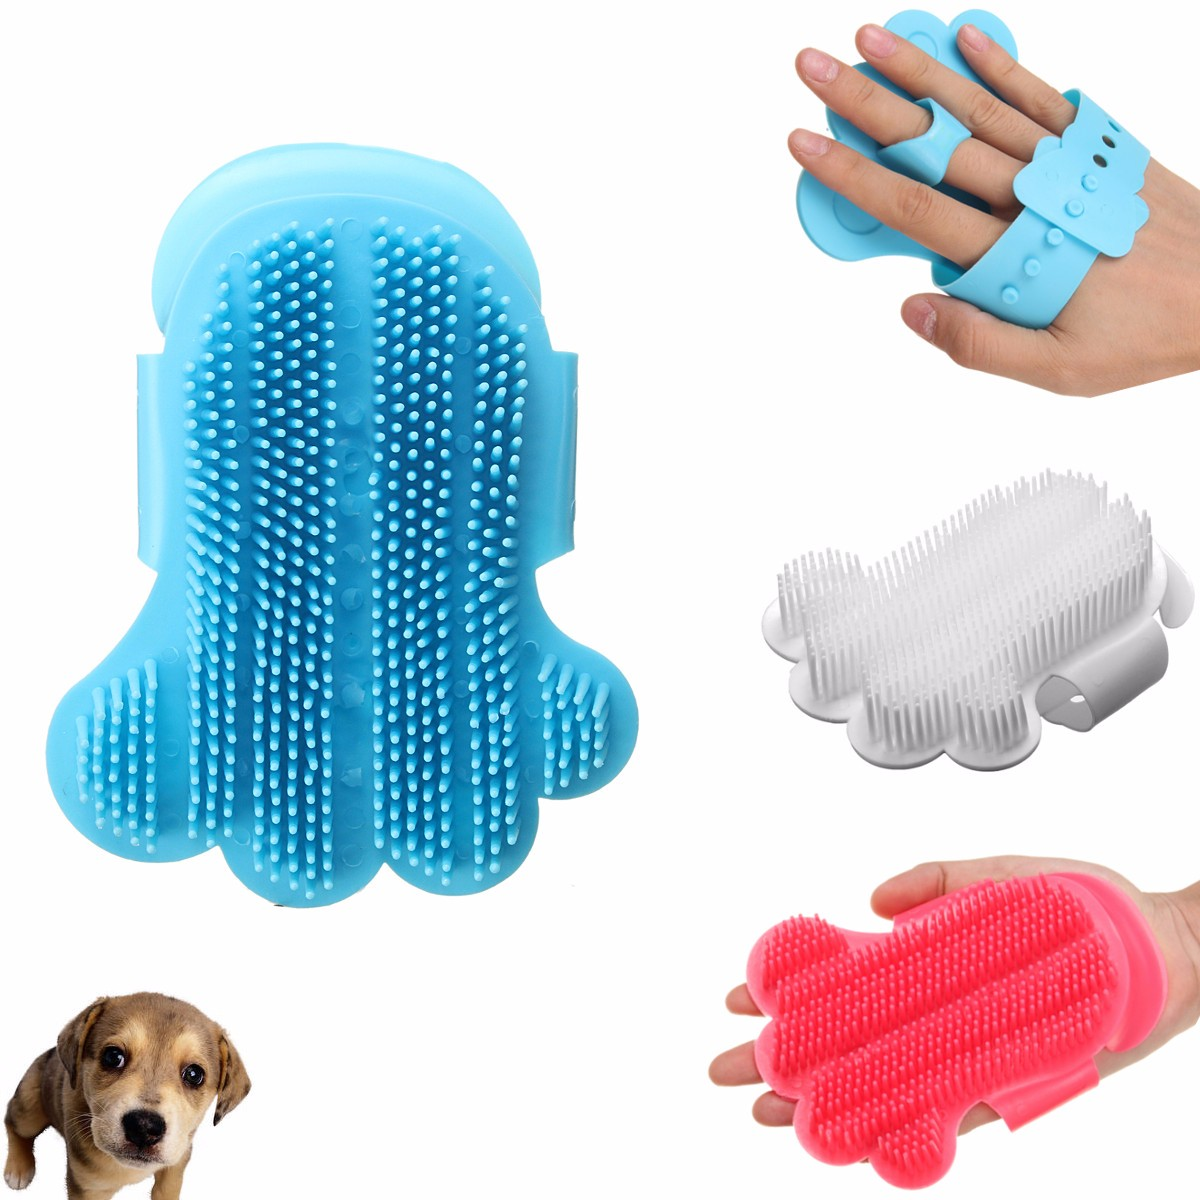 Pet Dog Cat Bath Brush Hair Fur Deshedding Cleaning Tool